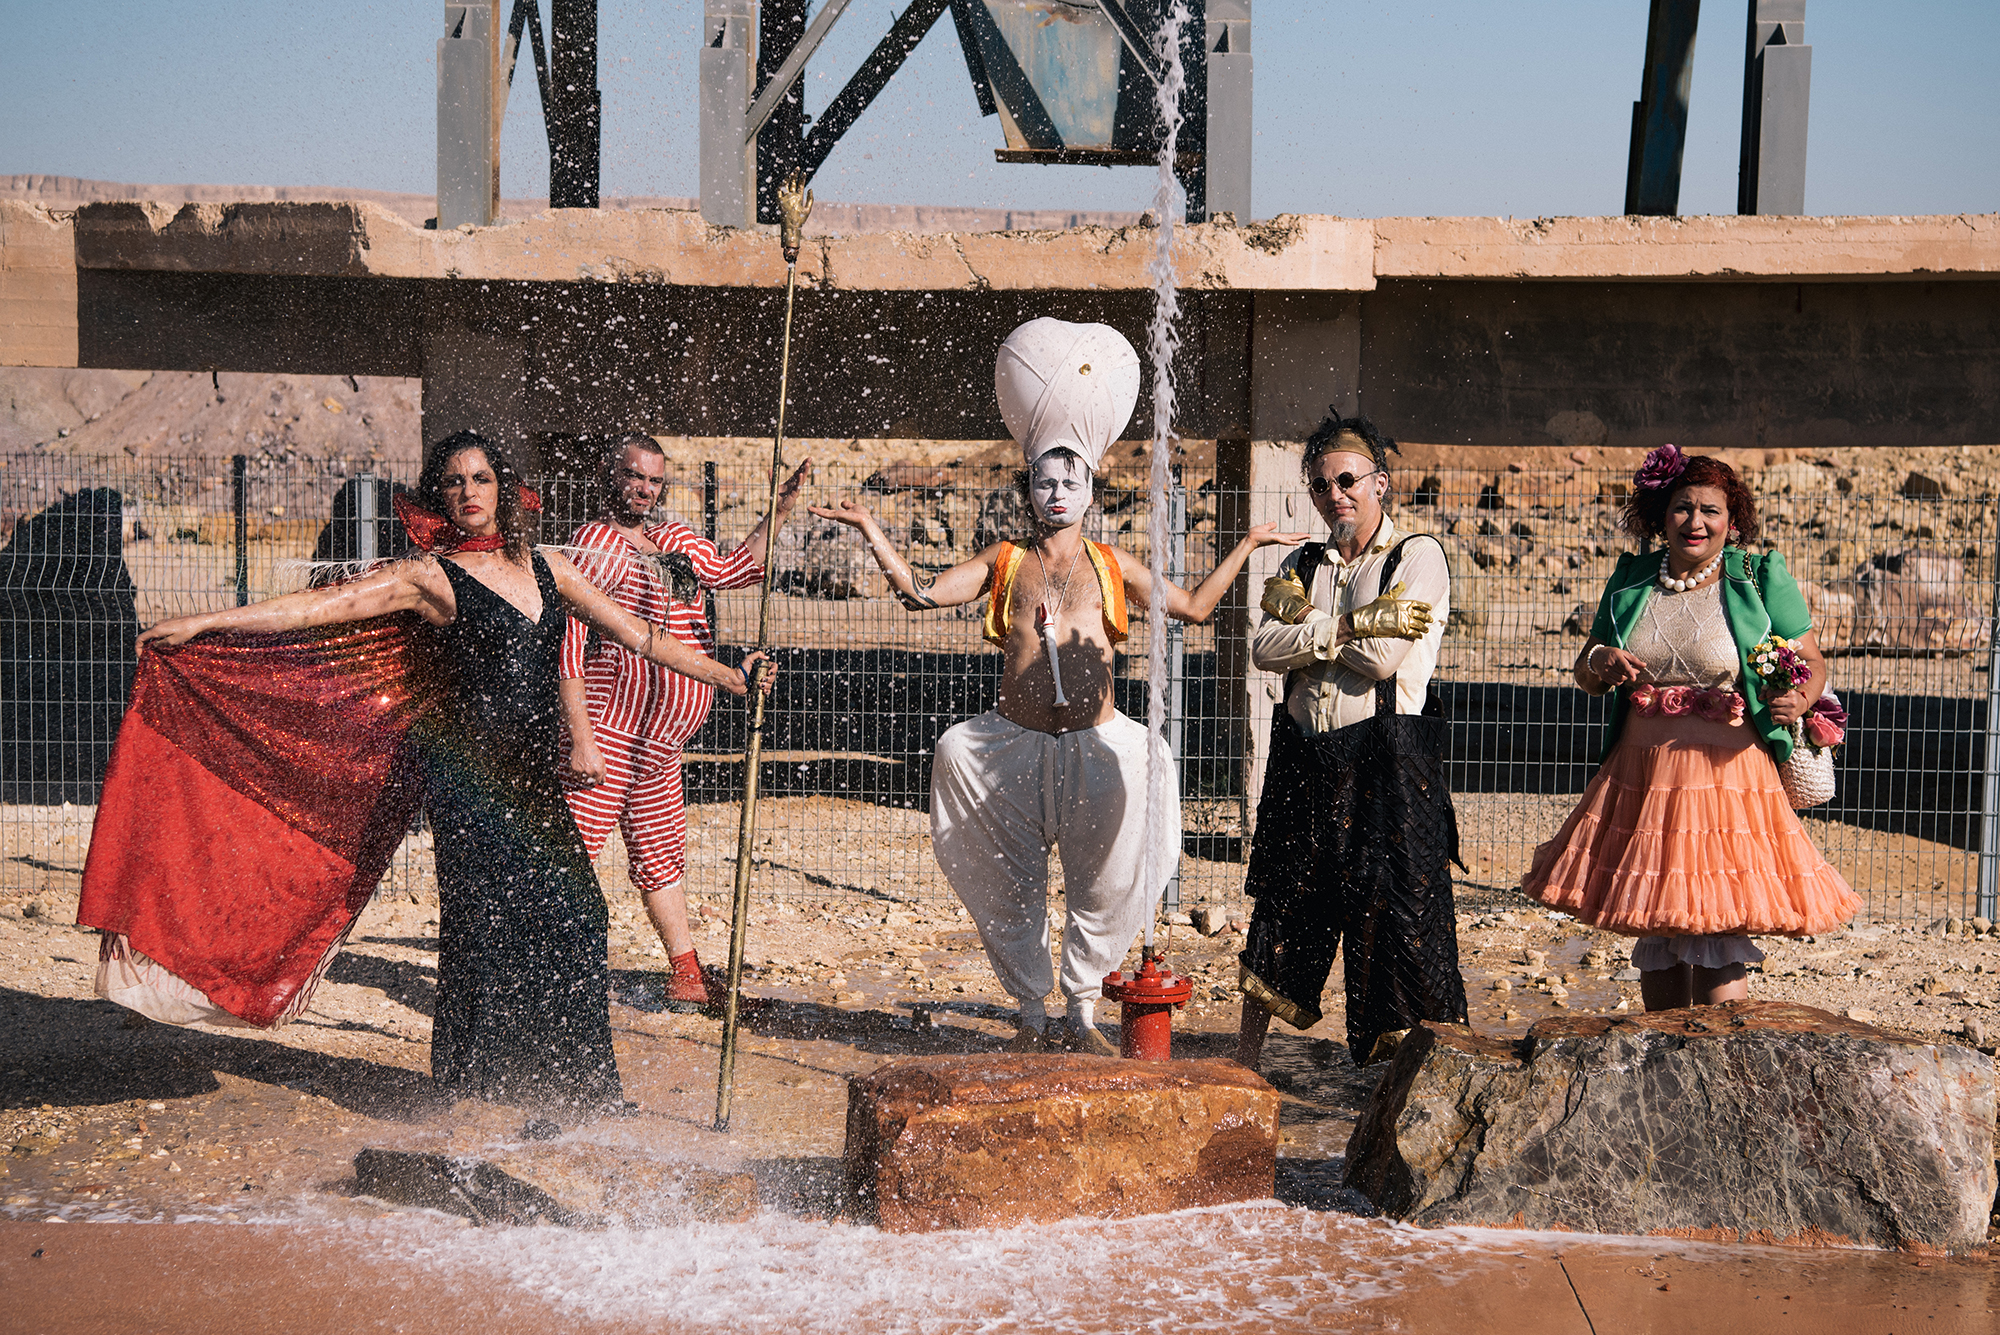 Arik Shraga and DAVAI Theater group in the dry sand as water spurts up from a fire hydrant